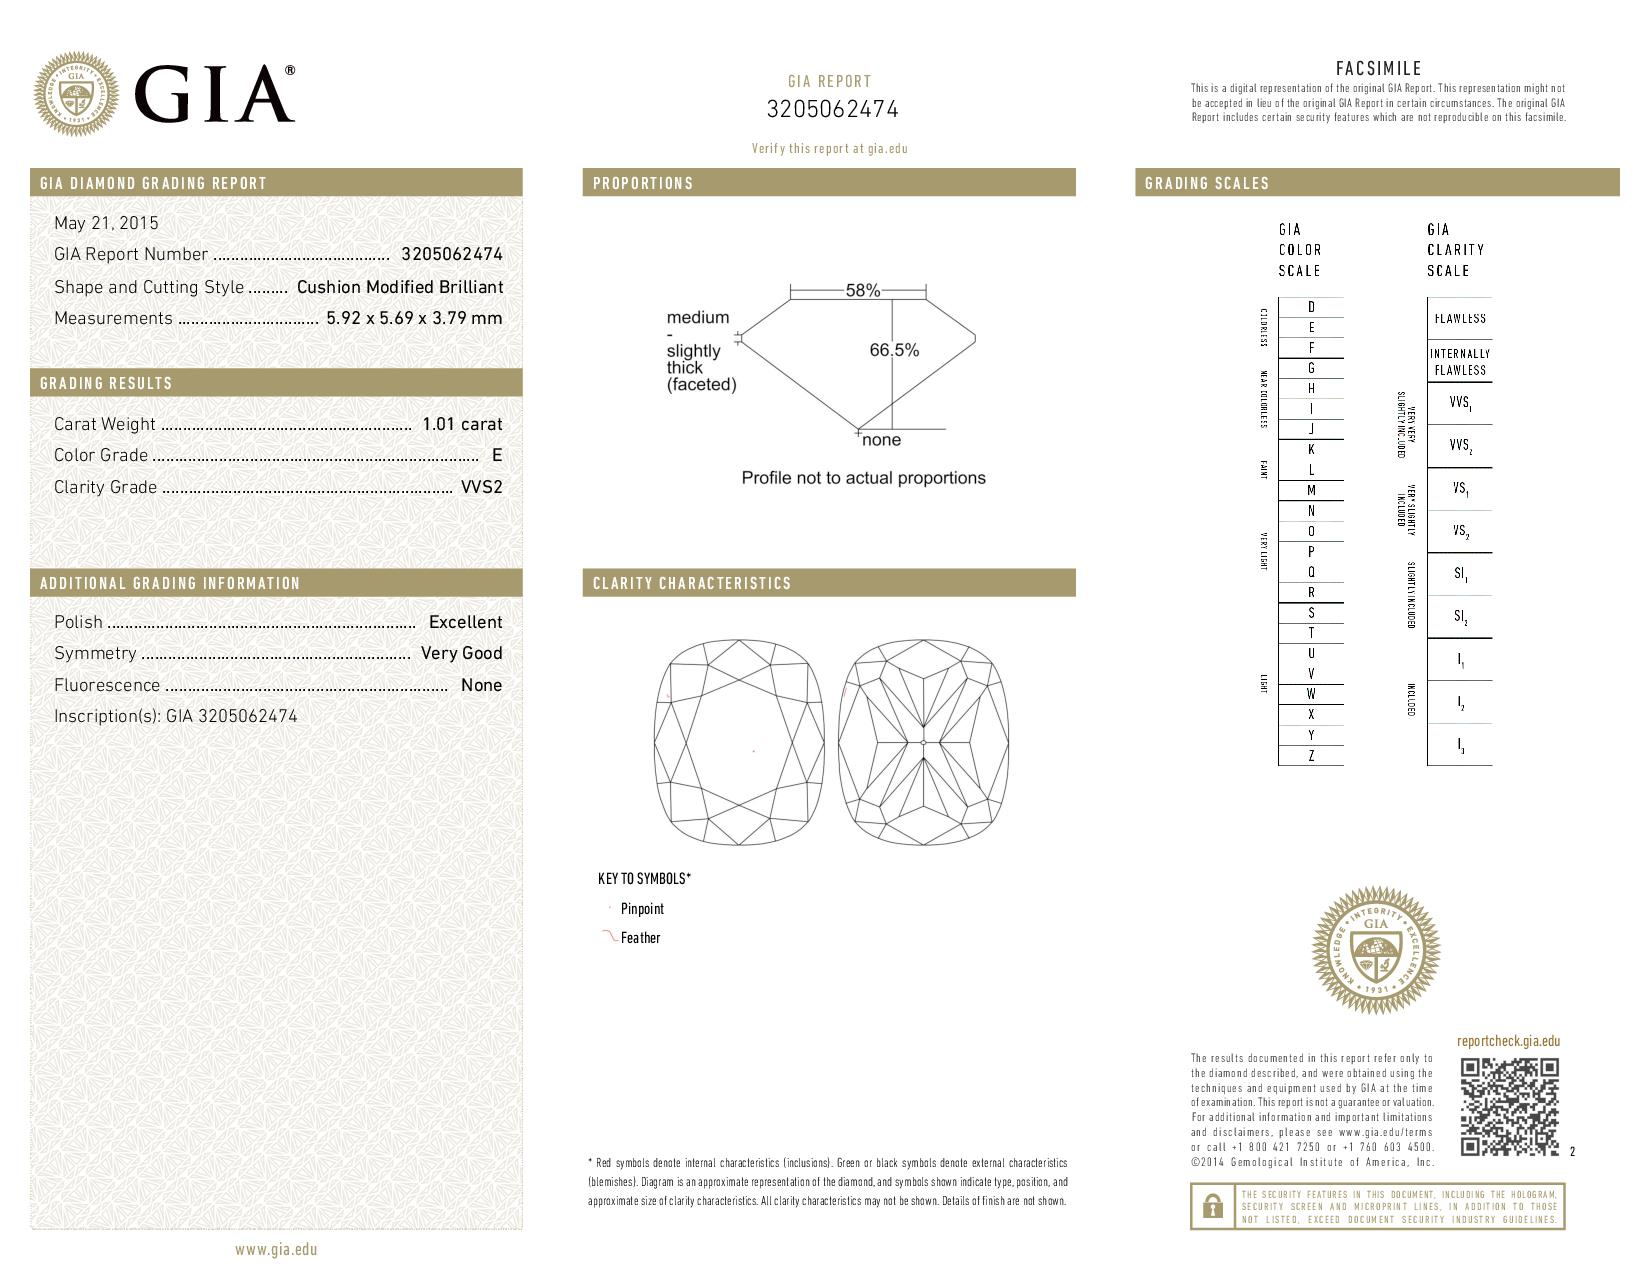 This is a 1.01 carat cushion shape, E color, VVS2 clarity natural diamond accompanied by a GIA grading report.